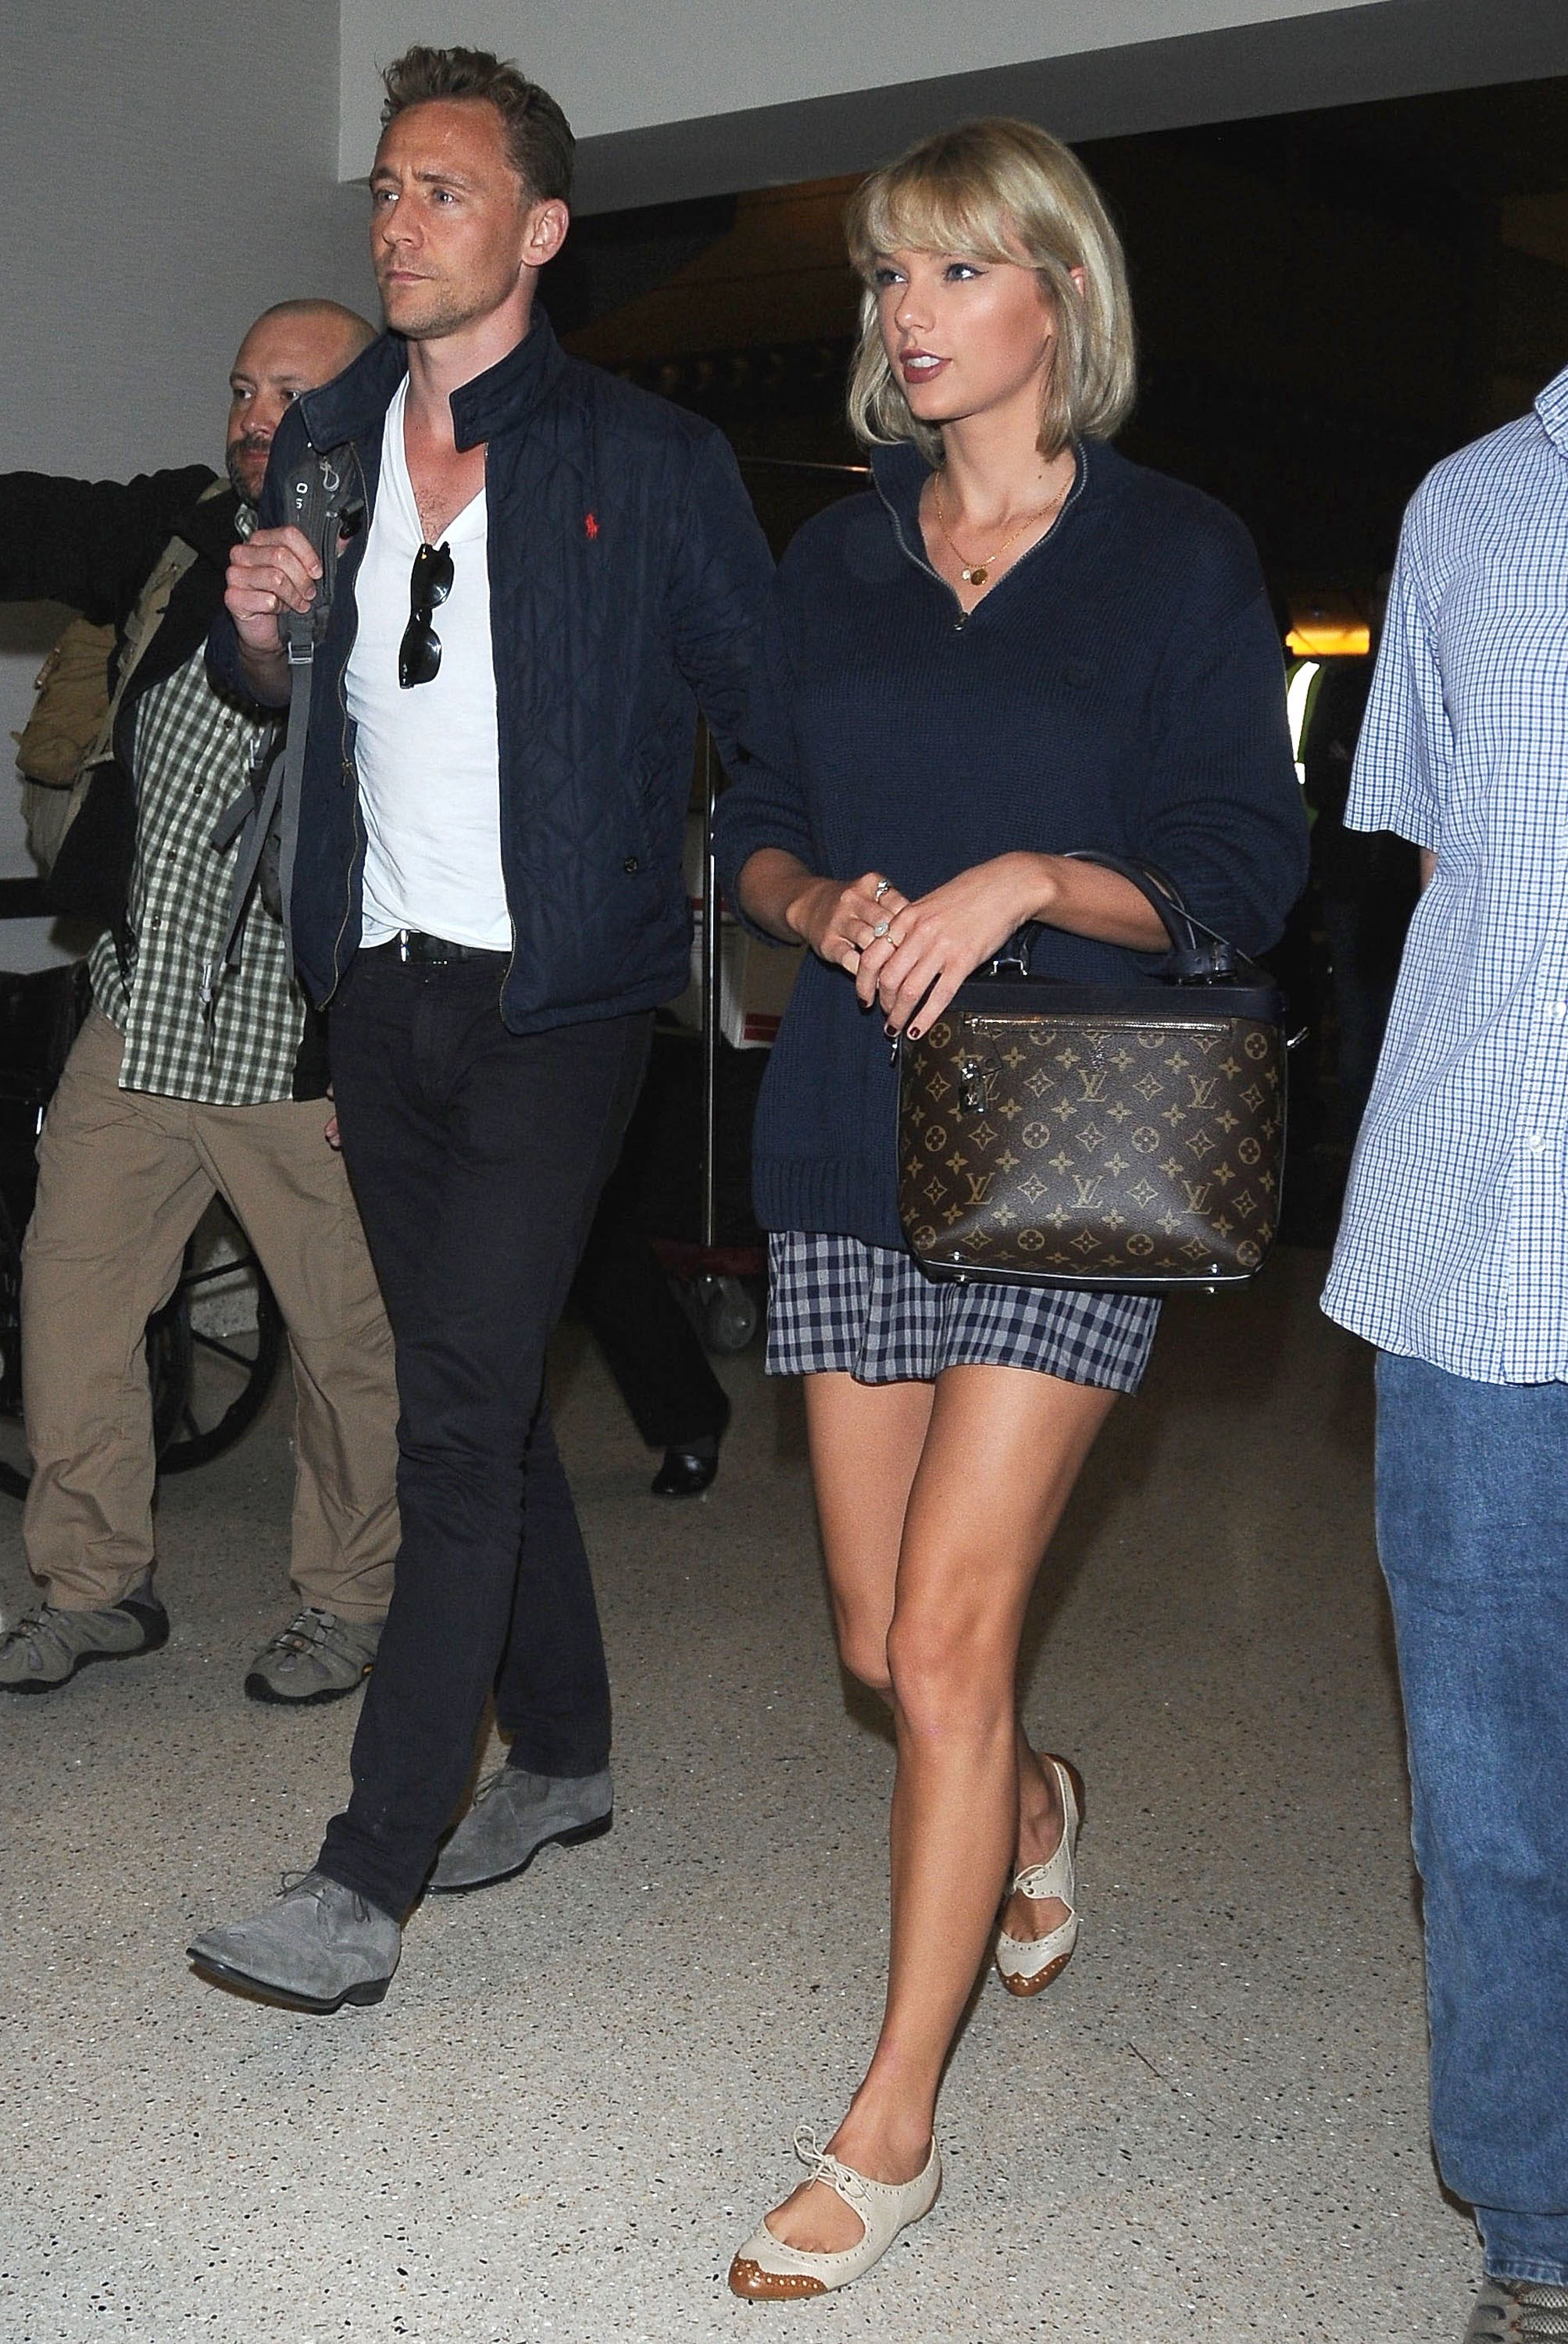 Taylor Swift and Tom Hiddleston step out for date night